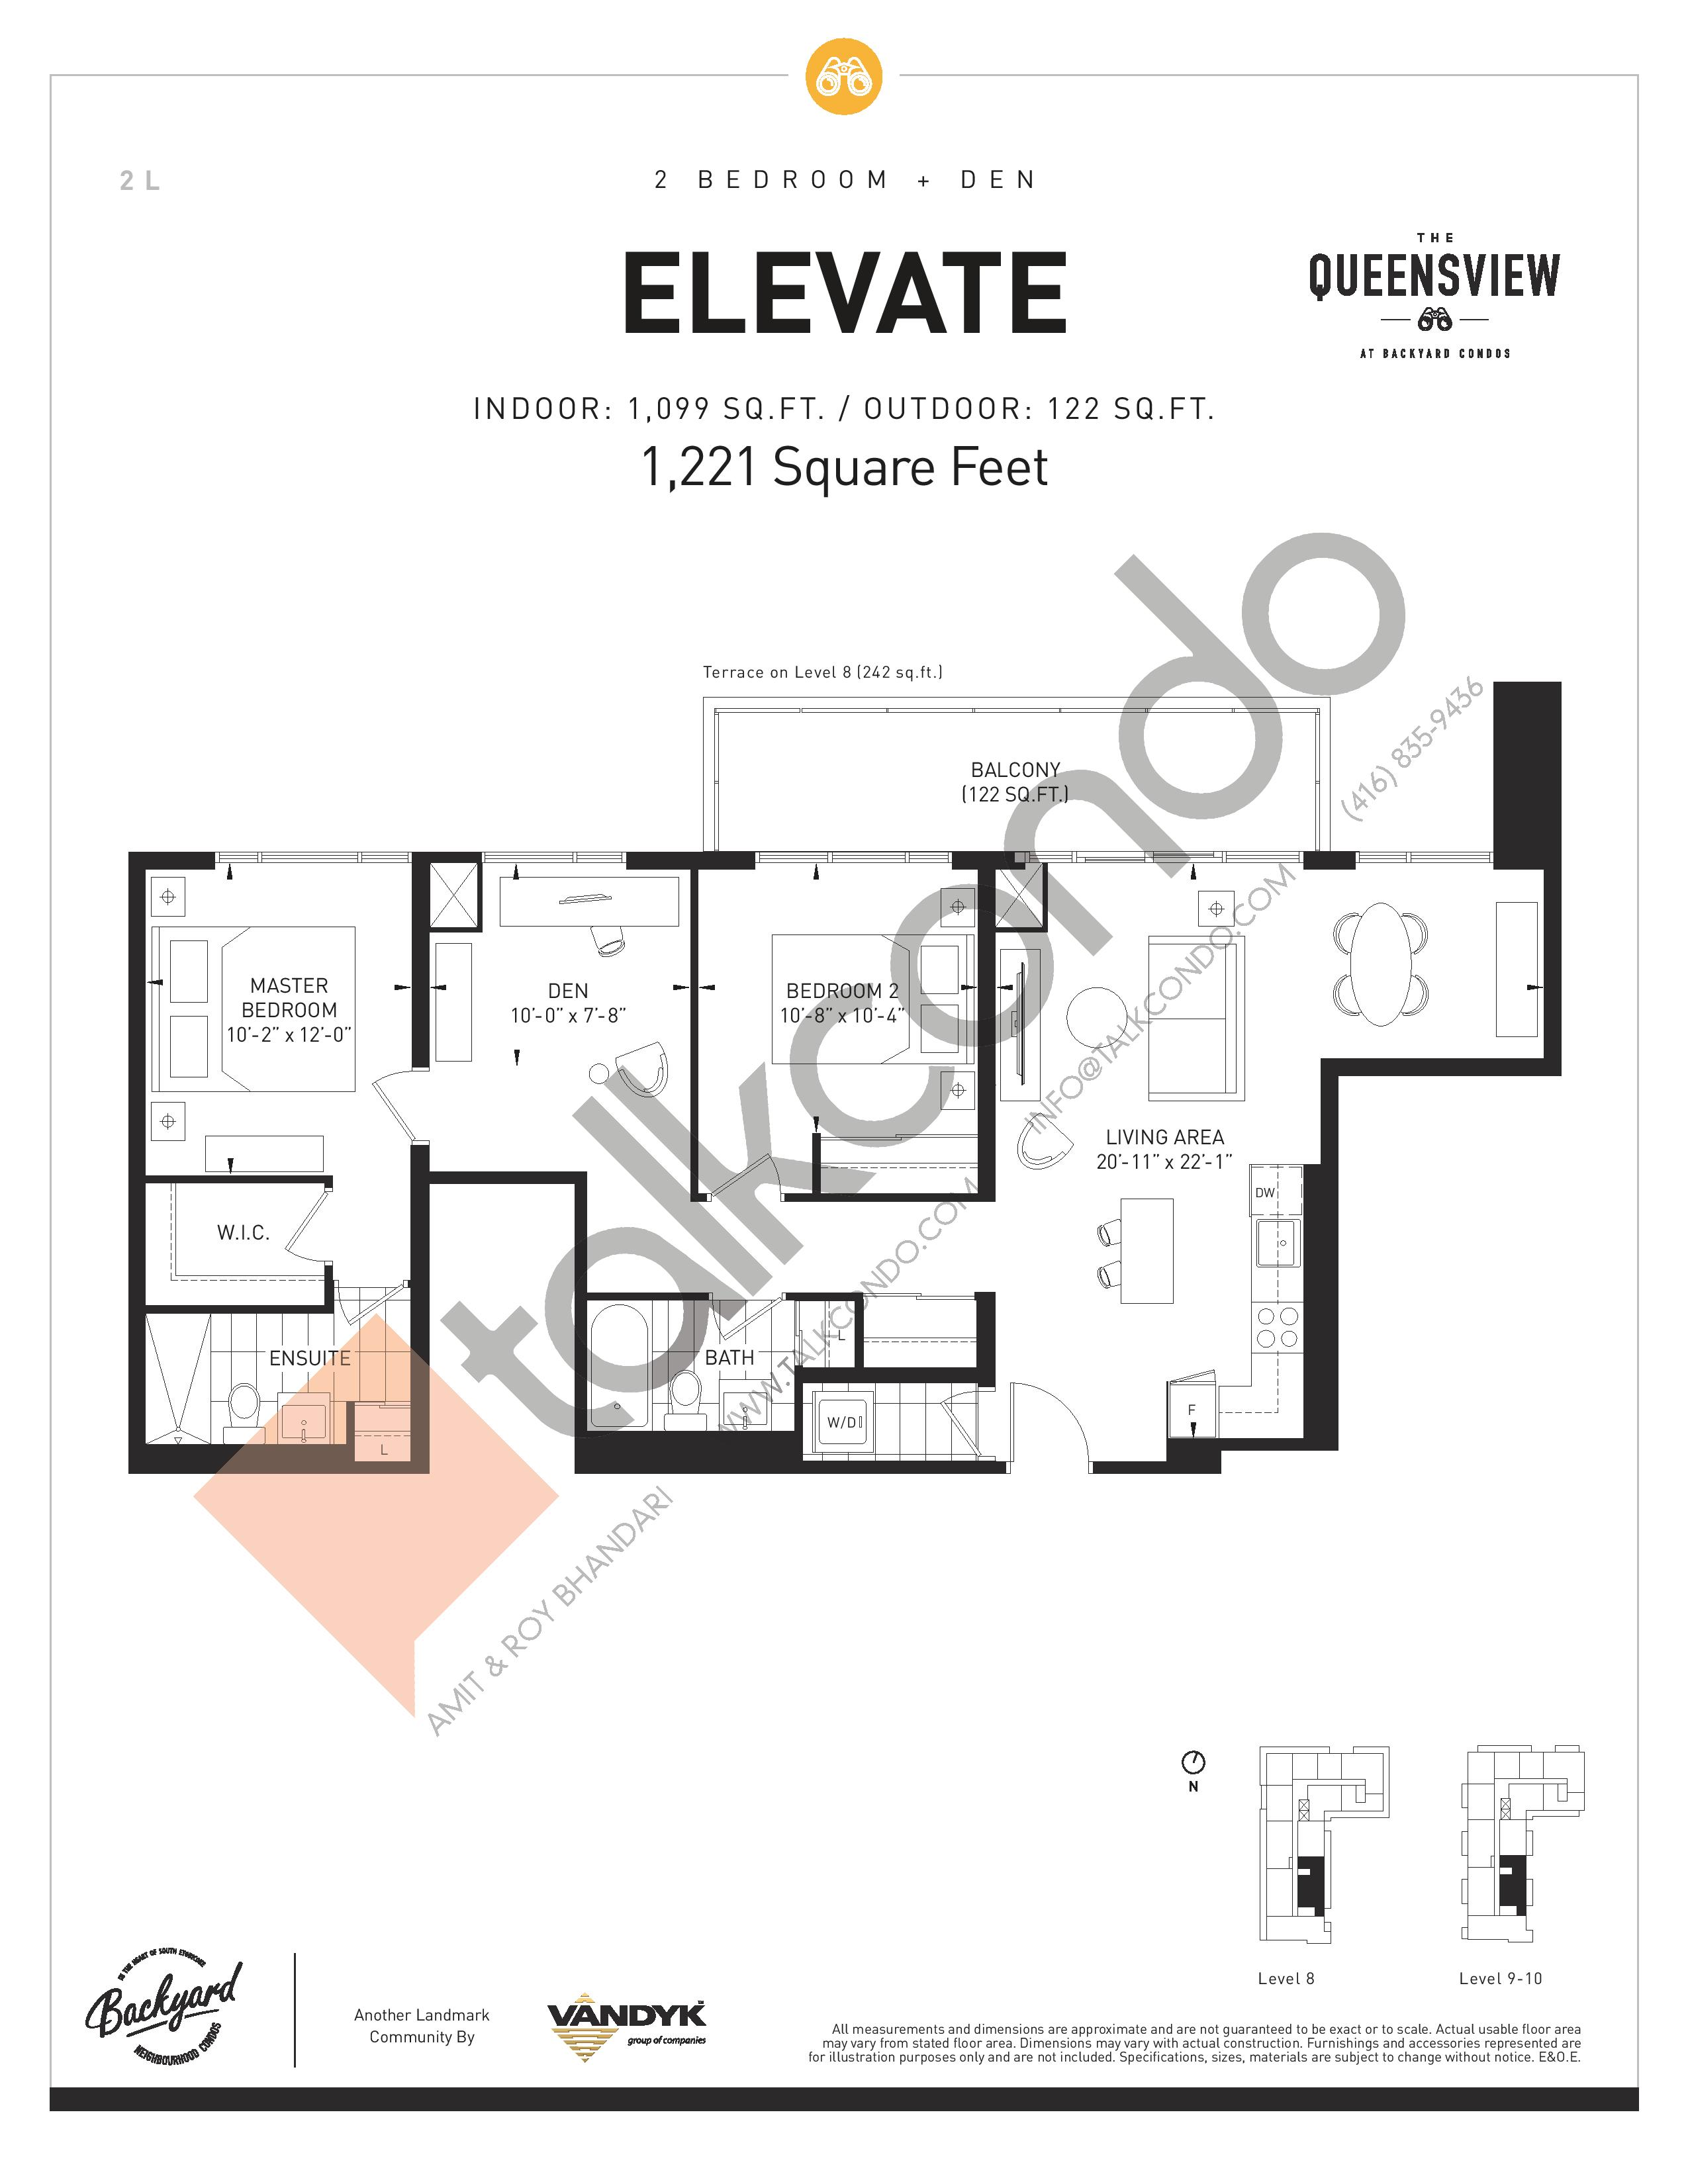 Elevate Floor Plan at The Queensview at Backyard Condos - 1099 sq.ft